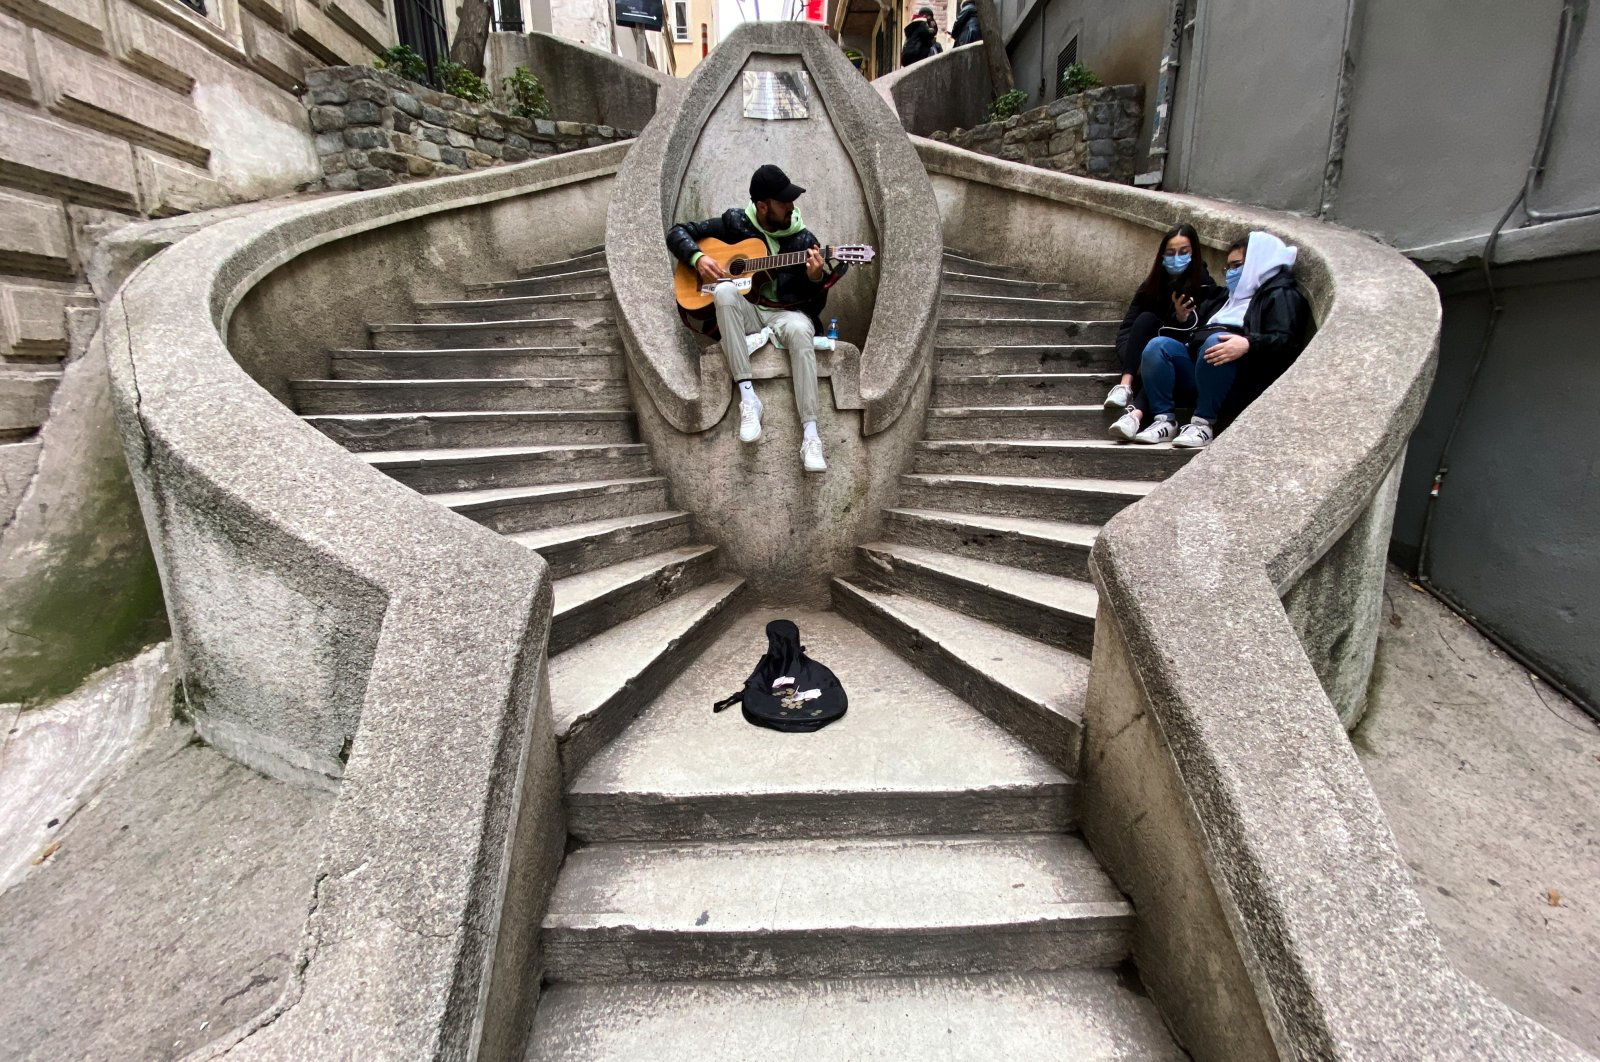 A musician performs at the Camondo Stairs amid the spread of the coronavirus disease (COVID-19), in Istanbul, Turkey on Jan. 12, 2021. (Reuters Photo)